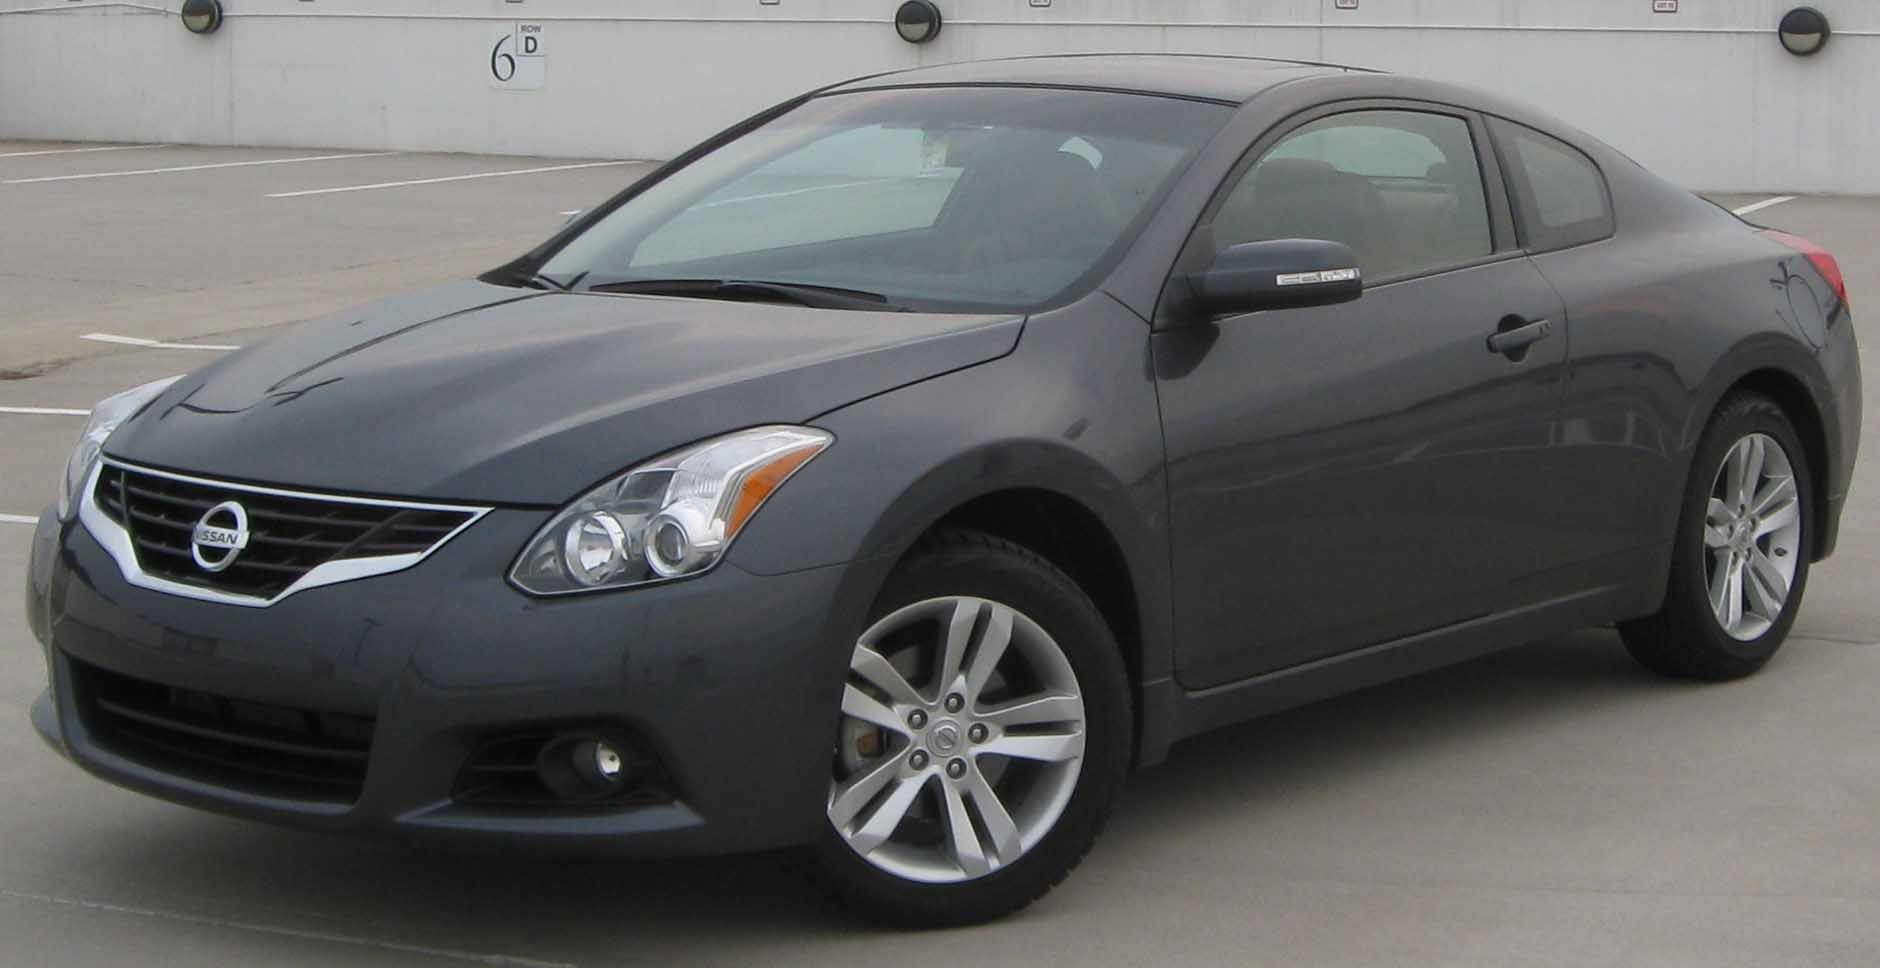 Rent 2015 nissan altima from al muftah car rental bahrain call 66331234